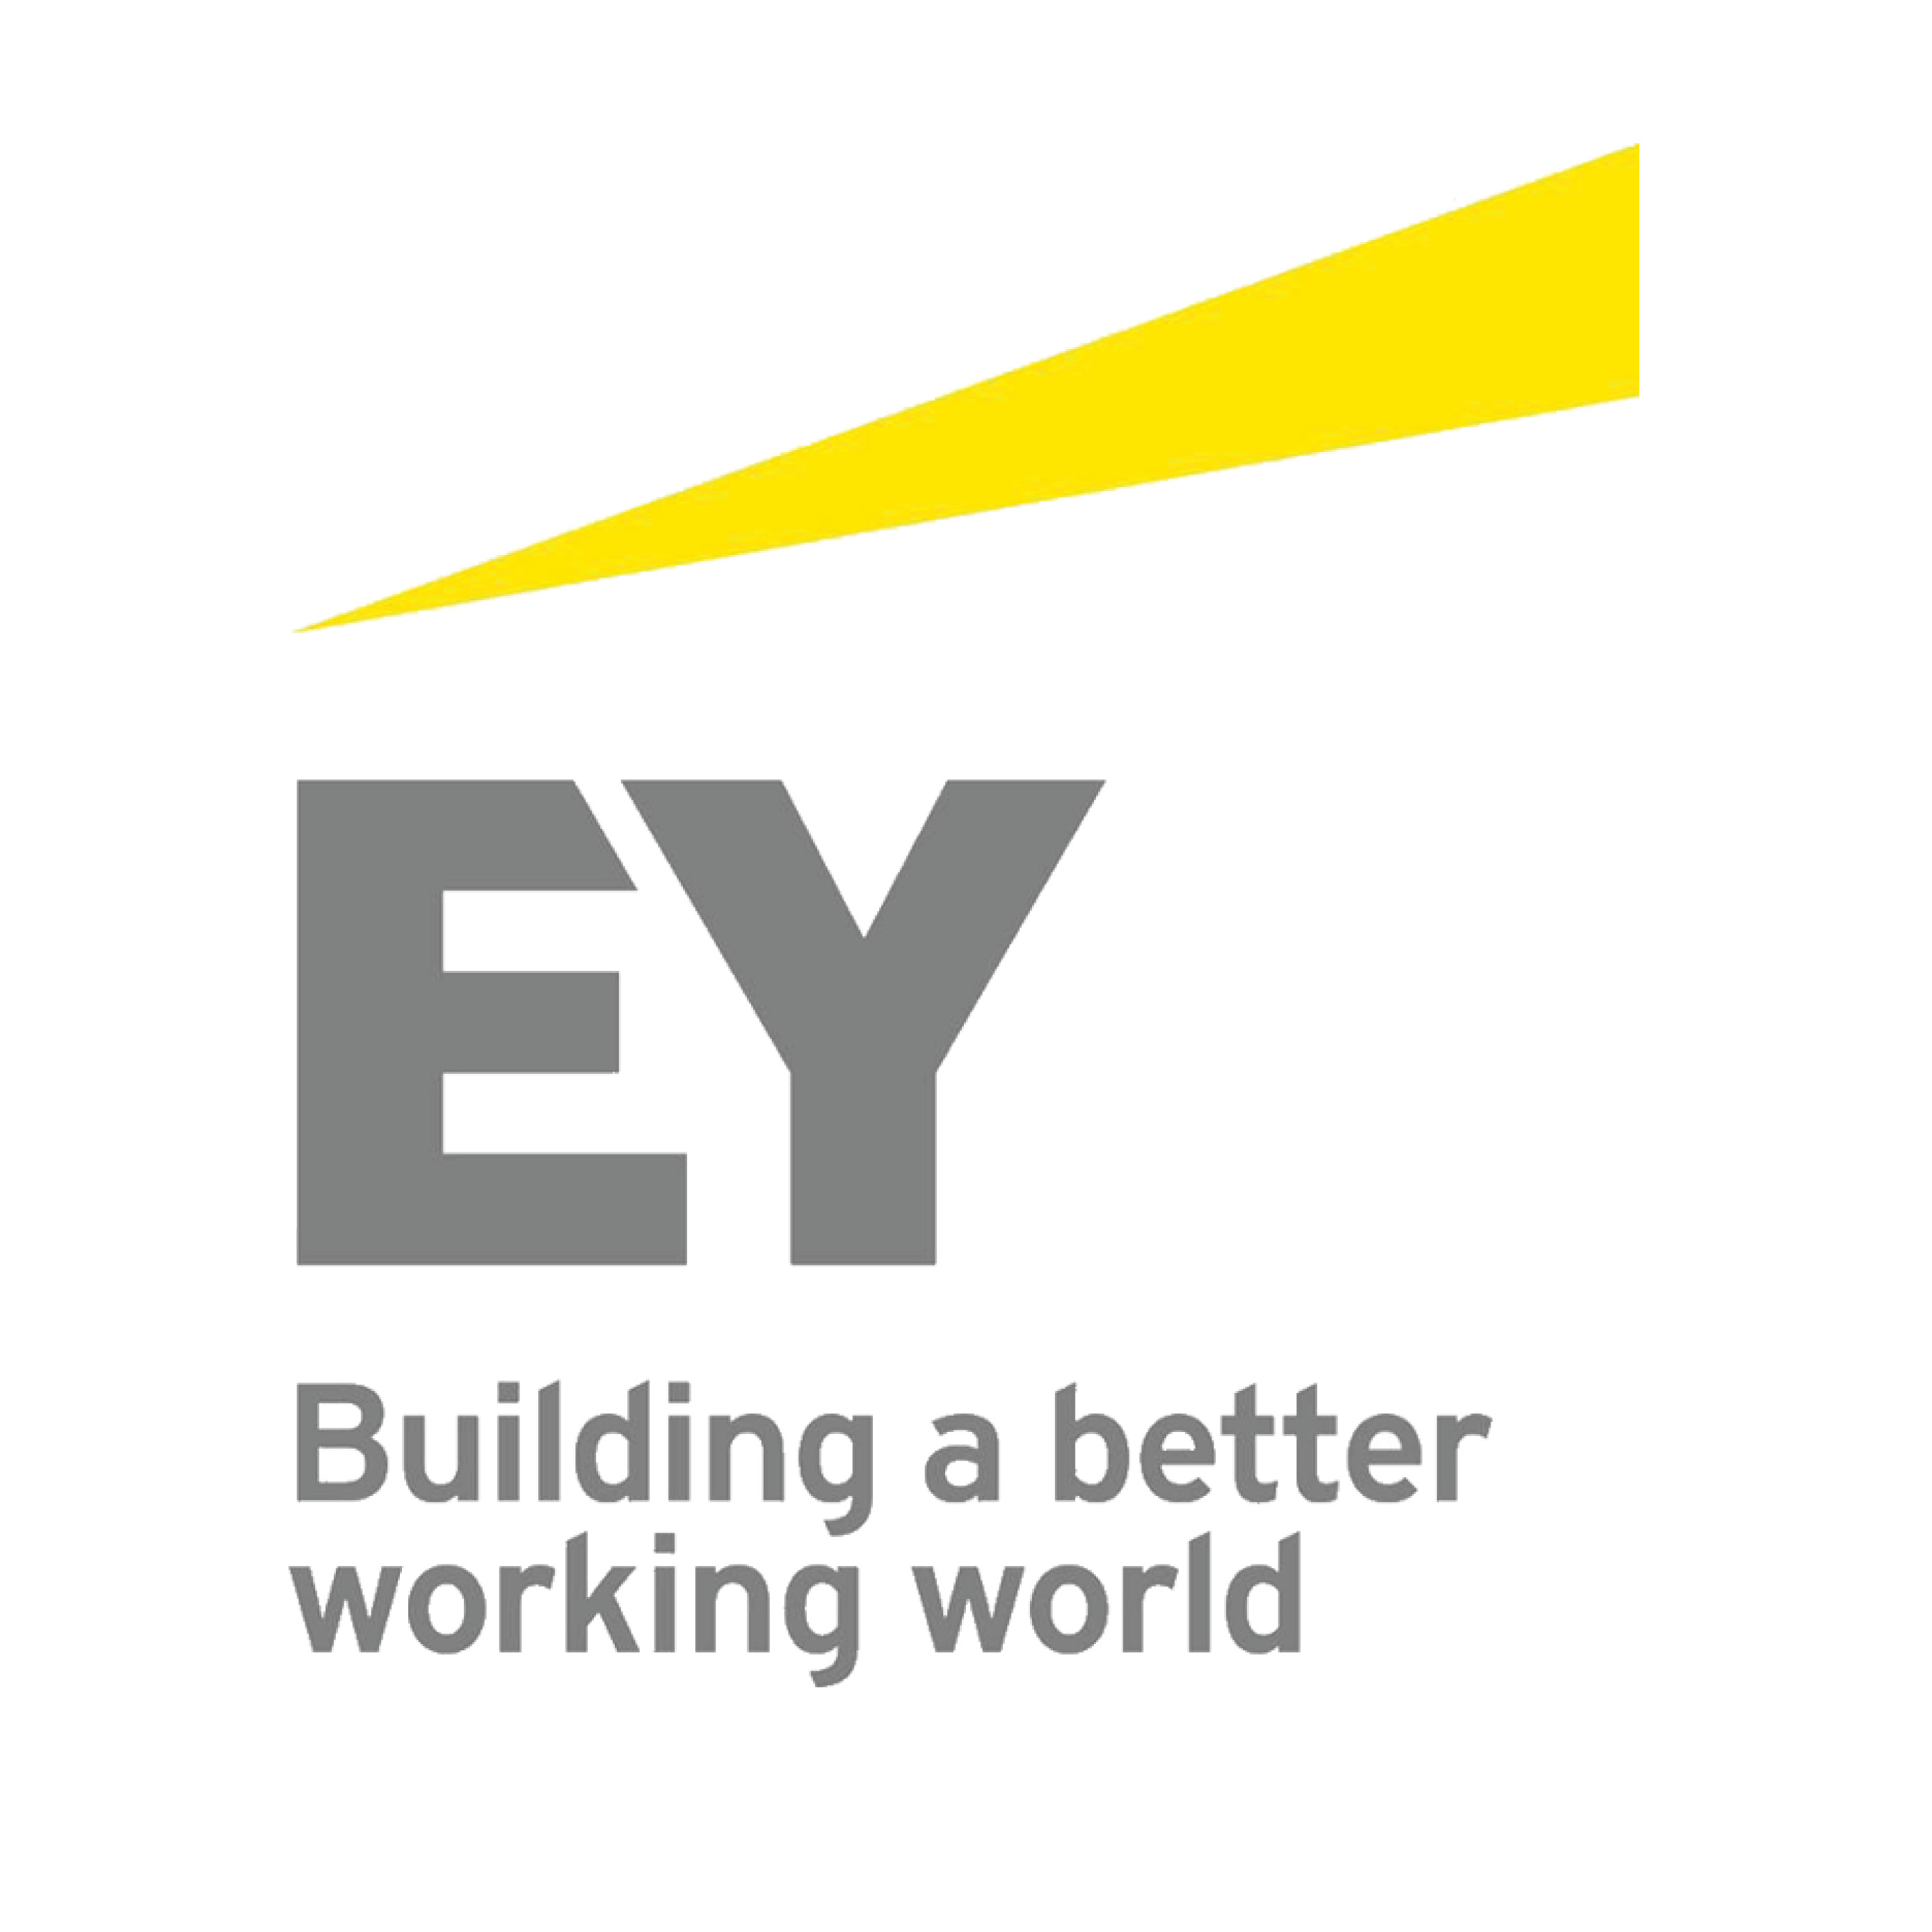 Ernst & Young Advisory Services Limited